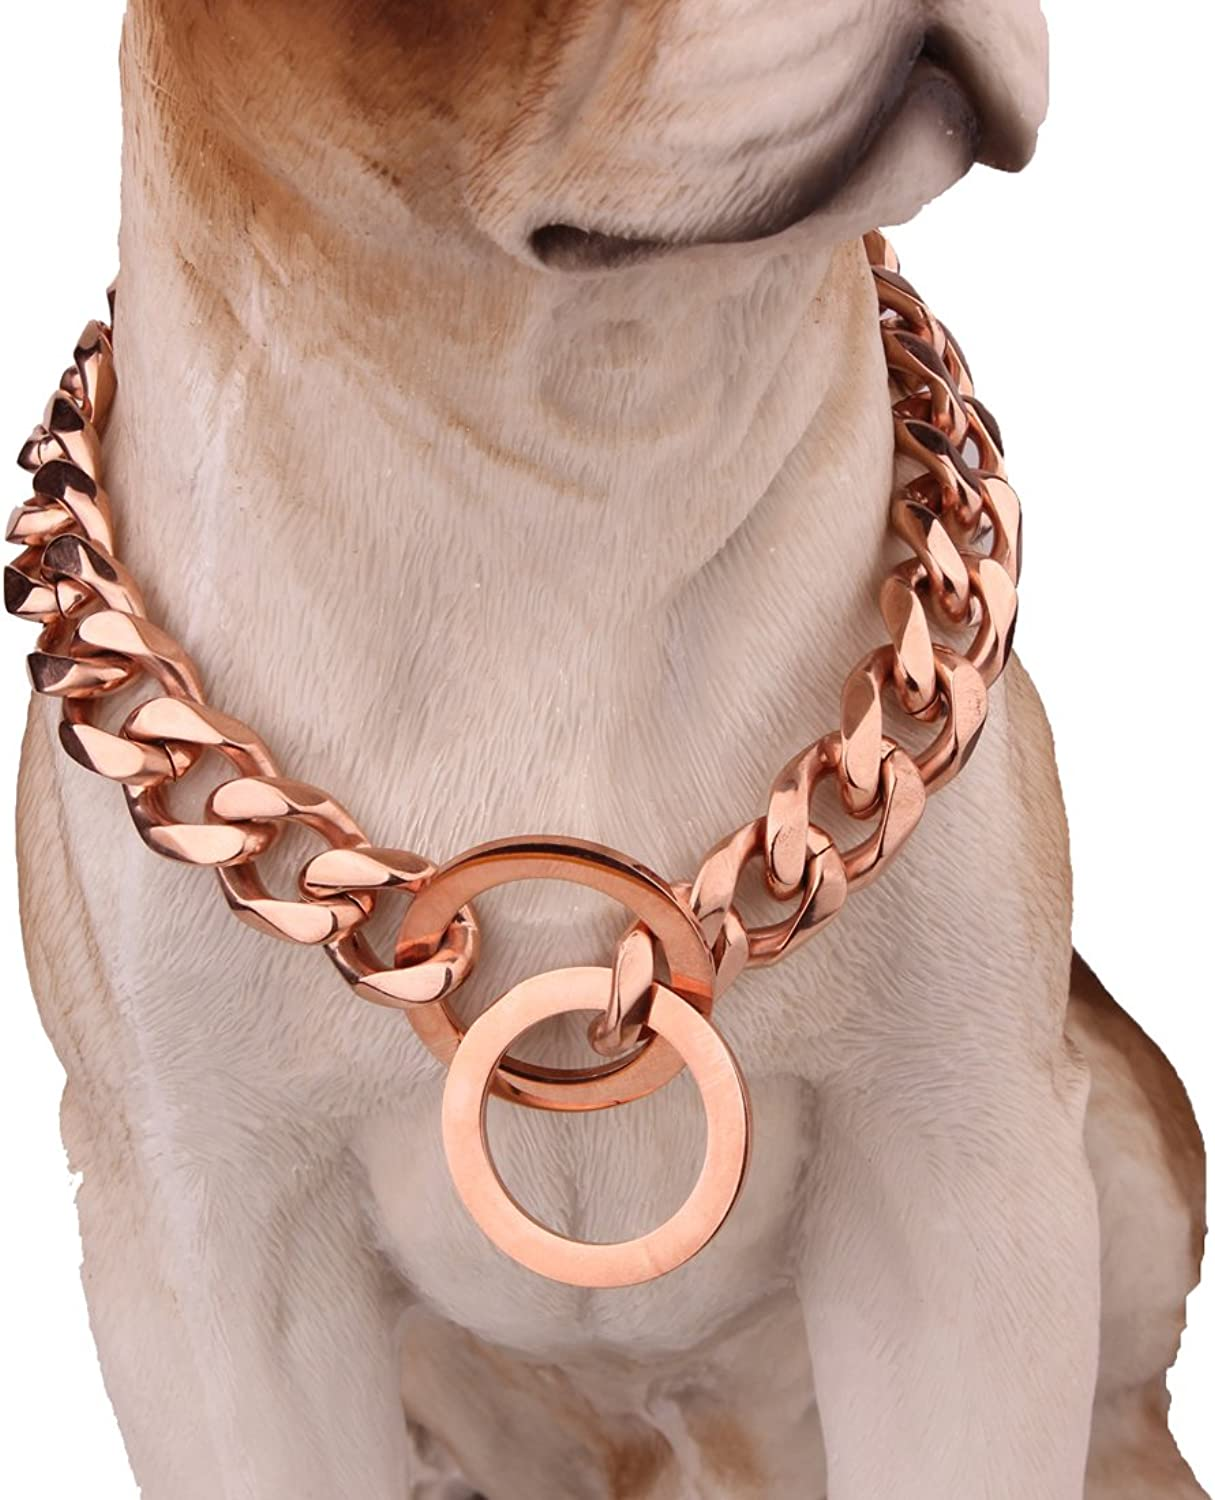 15mm Charm pink gold Fancy Metal Slip Dogs For Strong Dog Stainless Steel Curb Collar 1232inches (26inch)